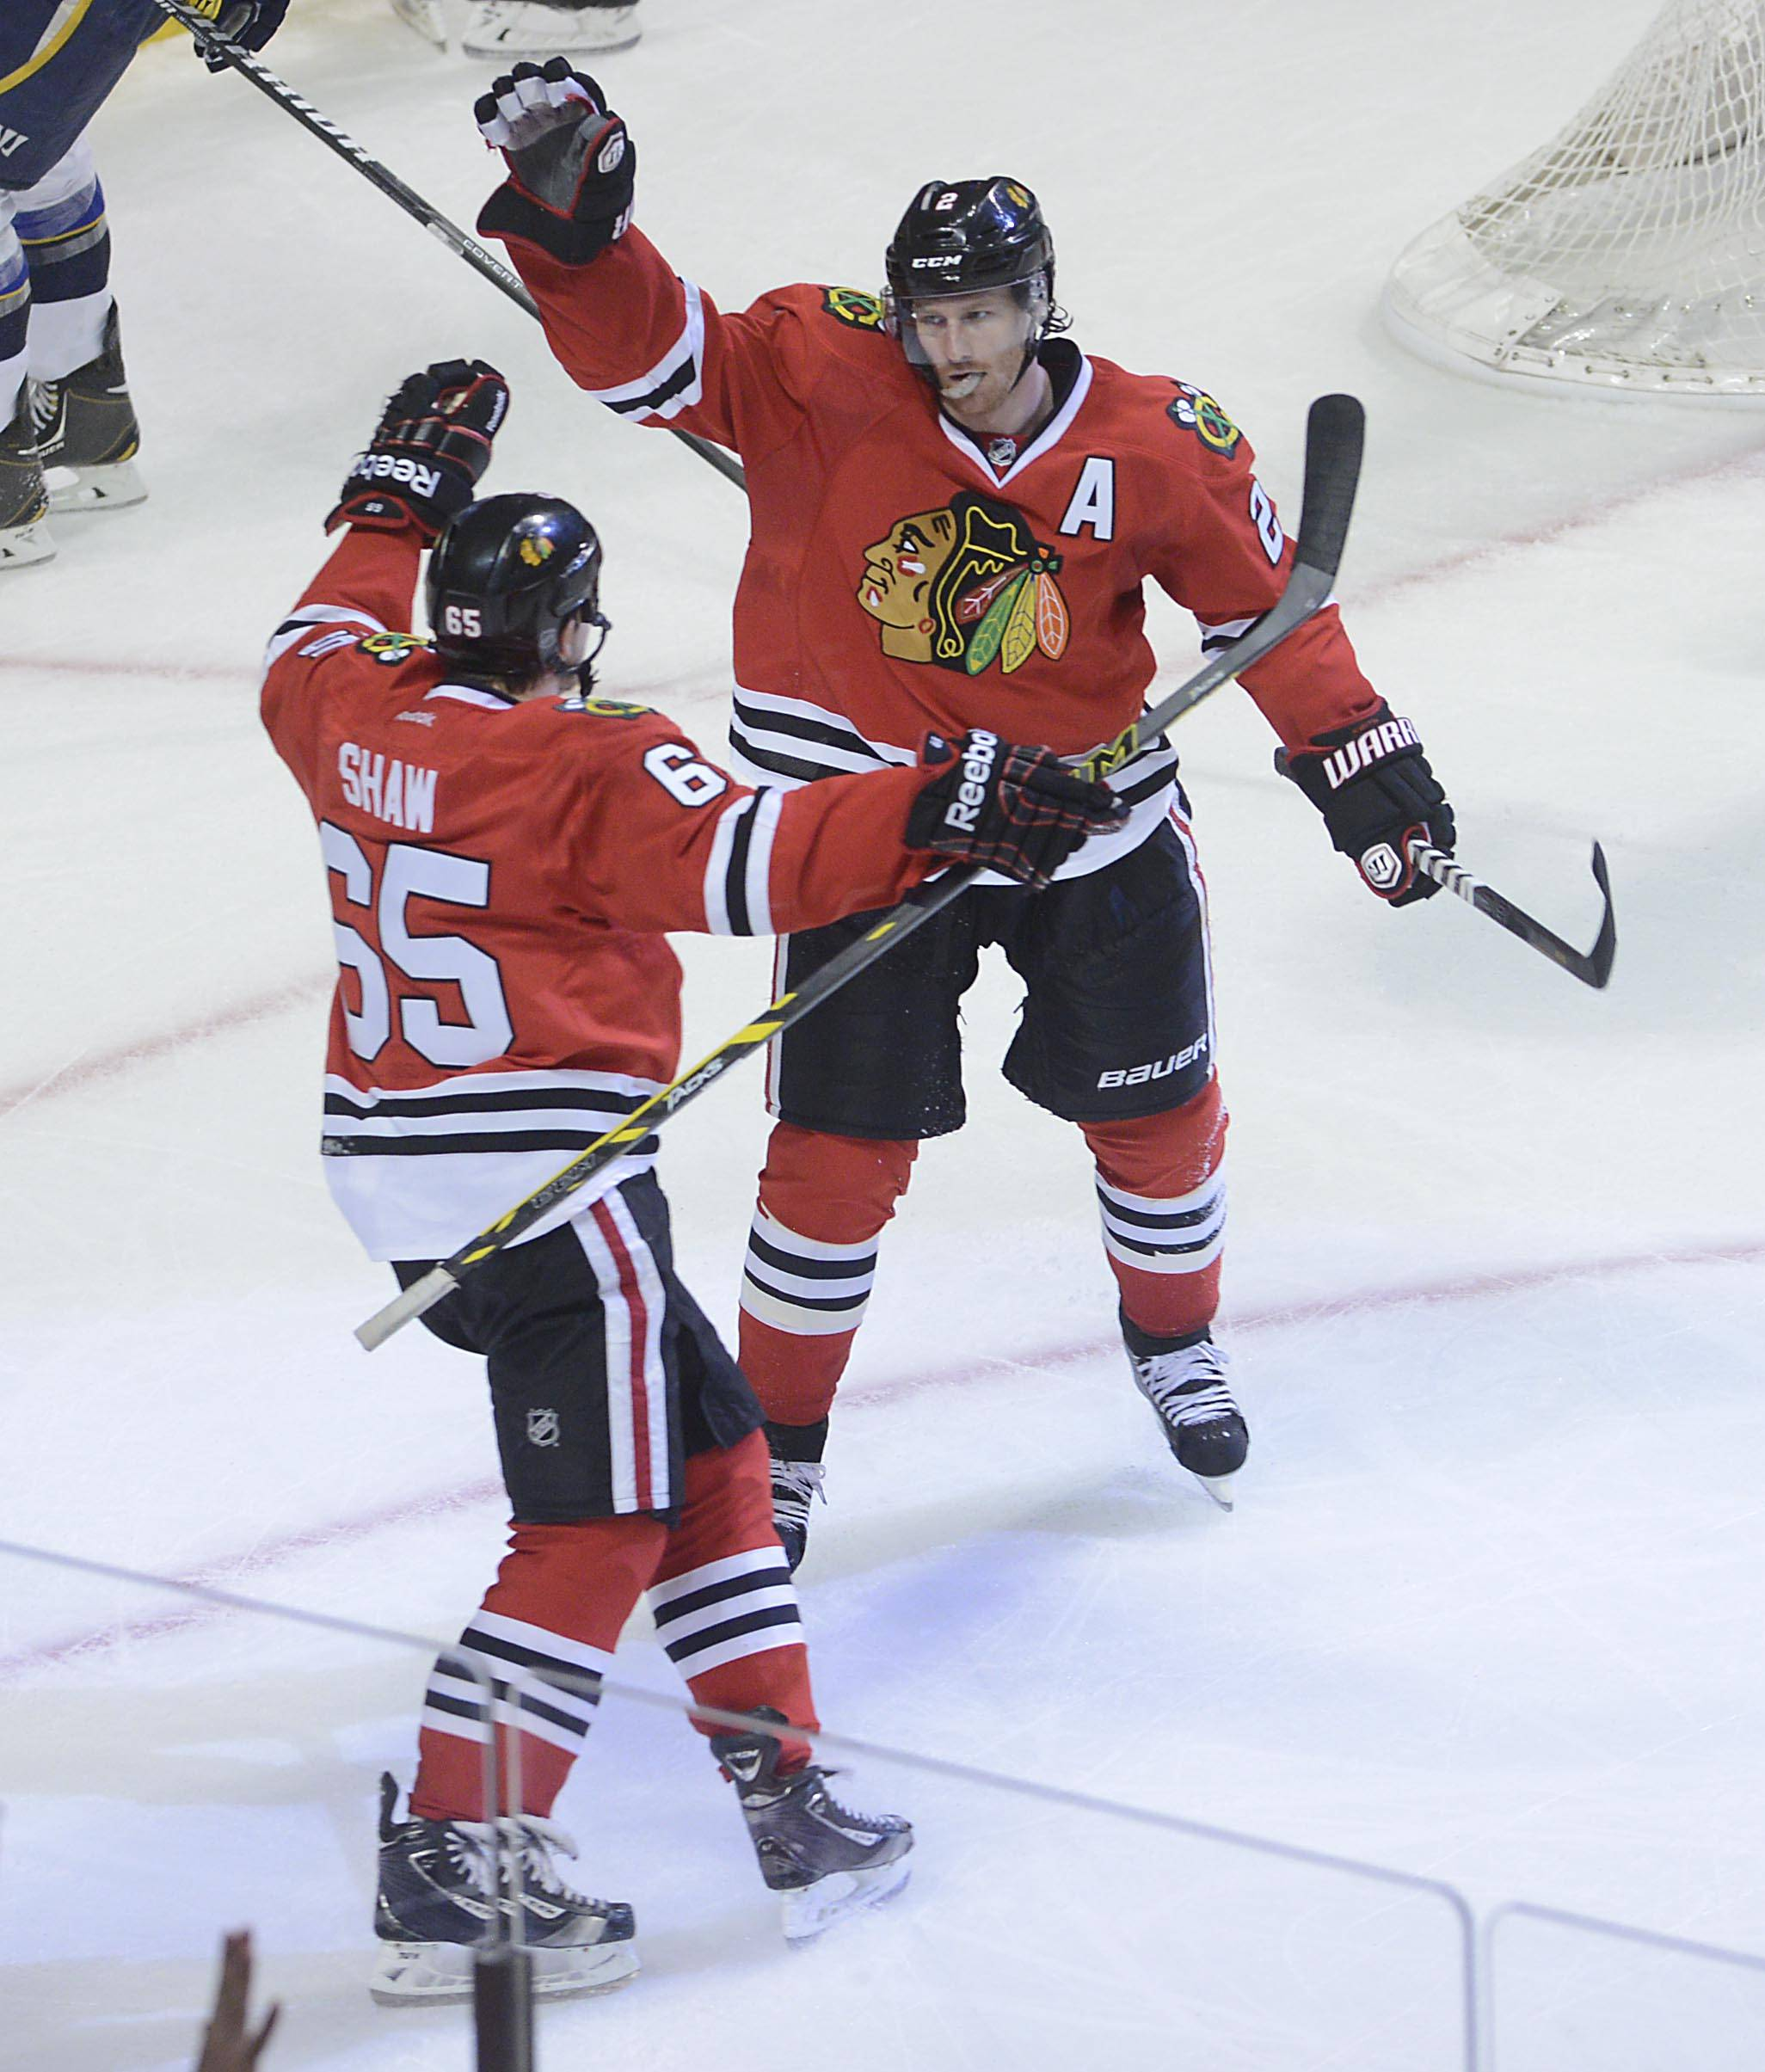 Blackhawks defenseman Duncan Keith celebrates with Andrew Shaw after Keith scored a third-period goal to beat the St. Louis Blues 5-1 Sunday. Keith was named a finalist for the Norris Trophy on Monday.